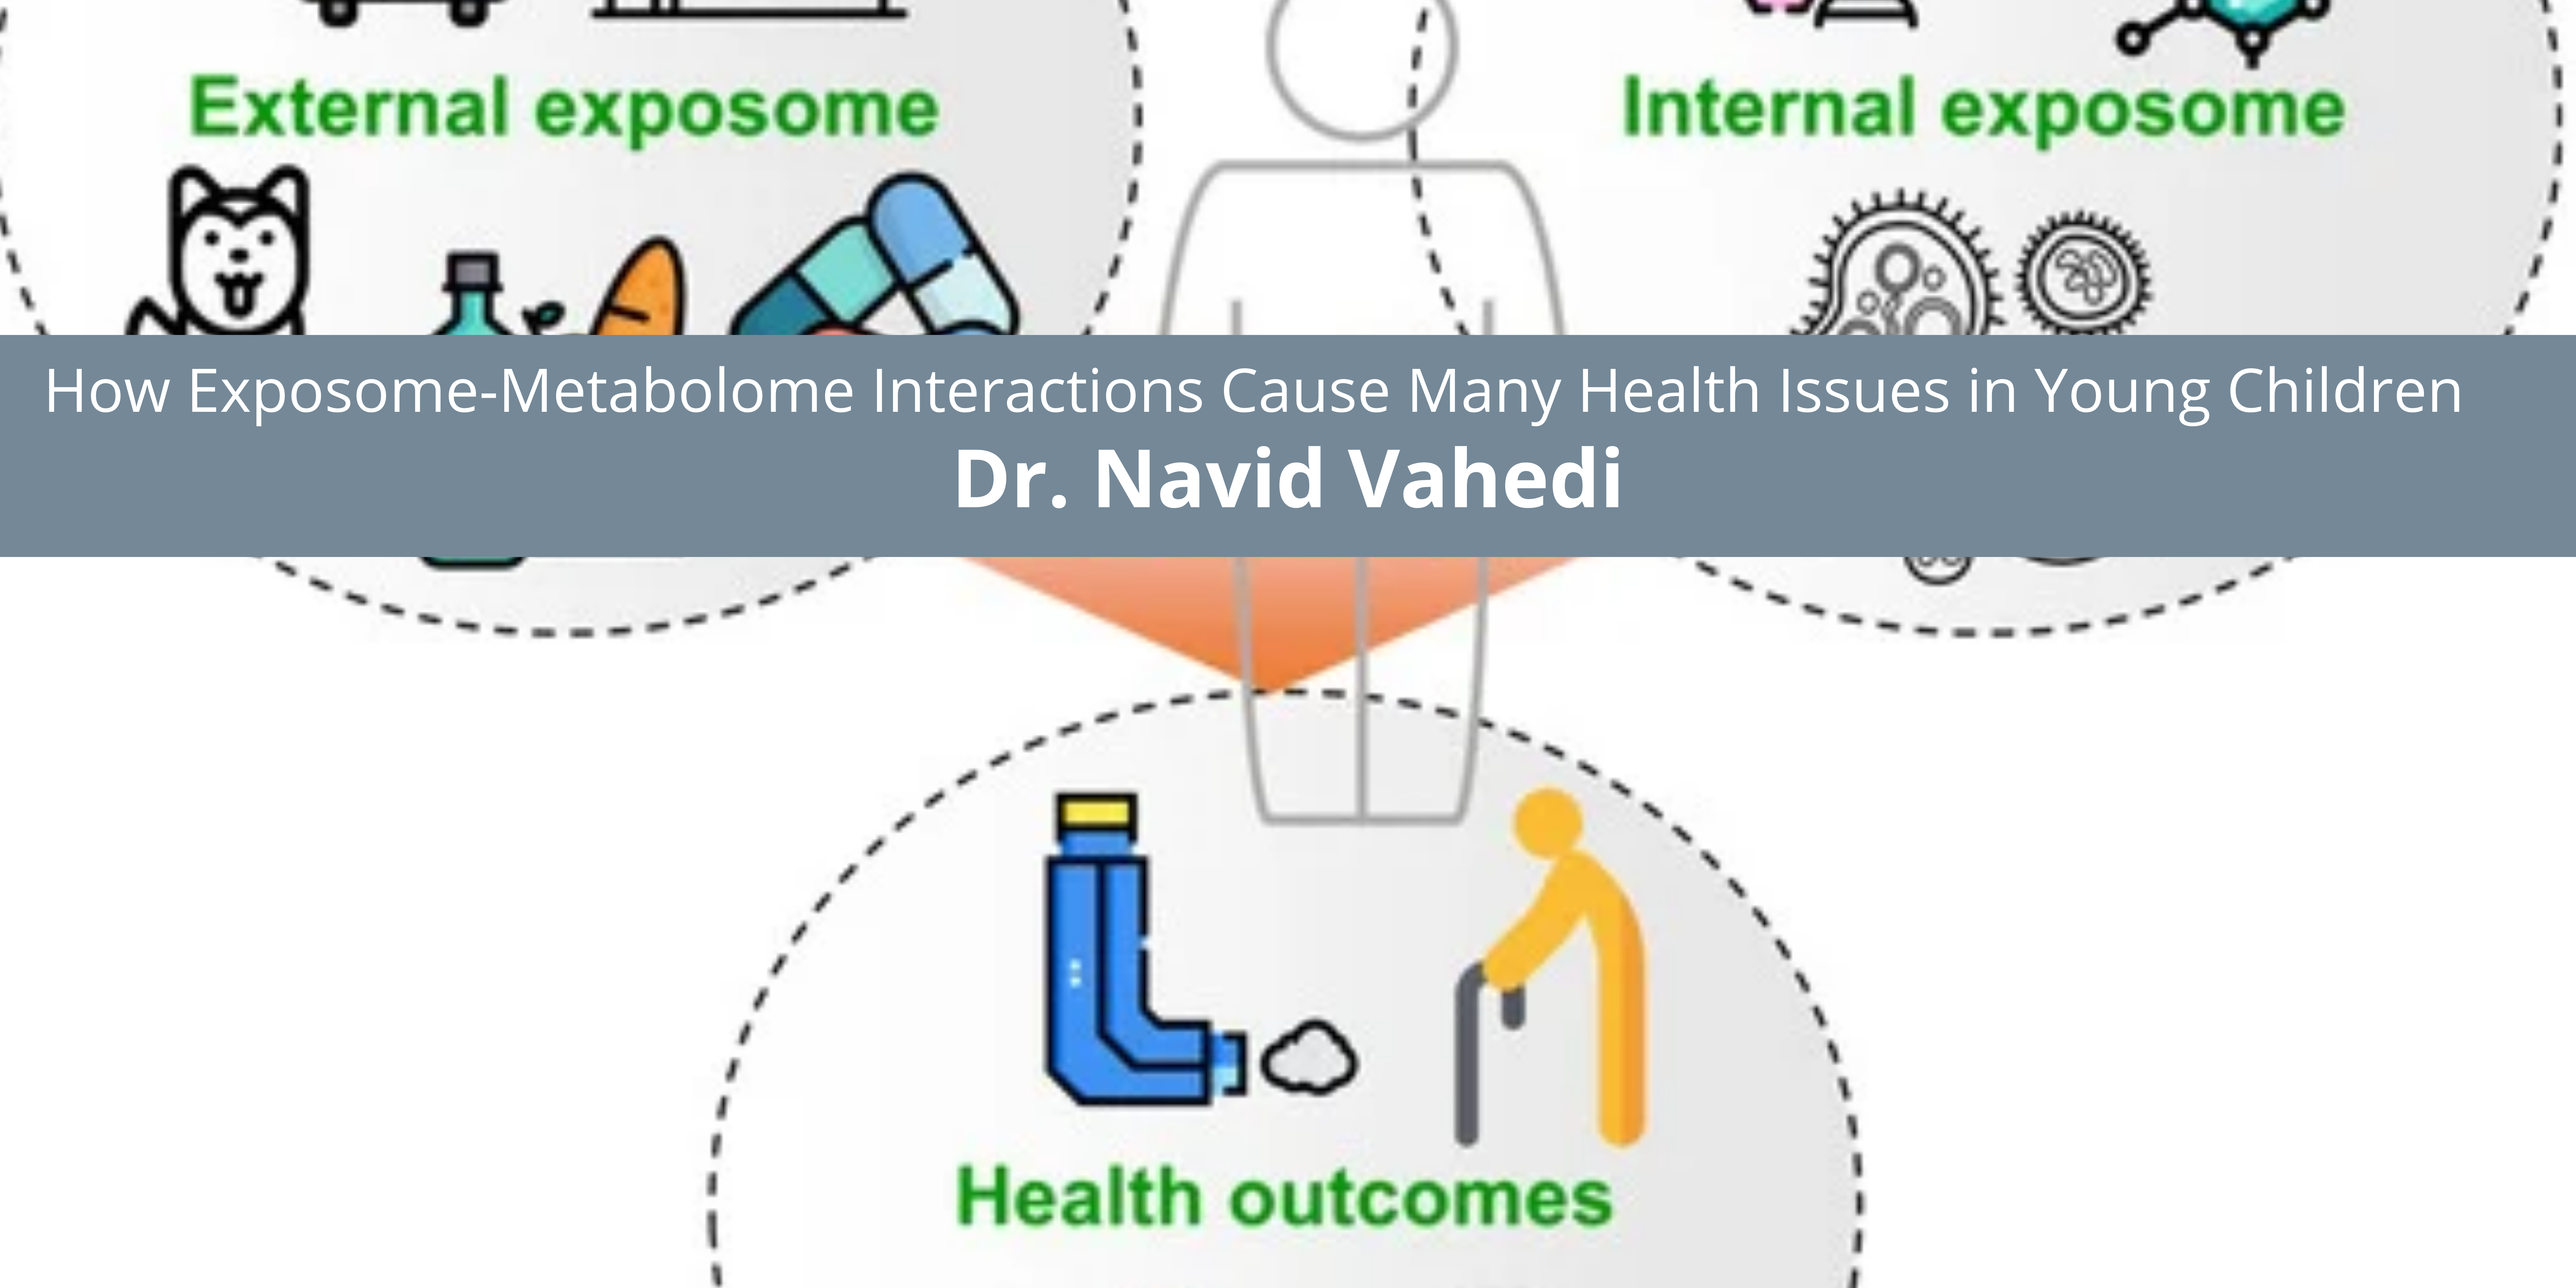 Dr. Navid Vahedi Discusses How Exposome-Metabolome Interactions Cause Many Health Issues in Young Children